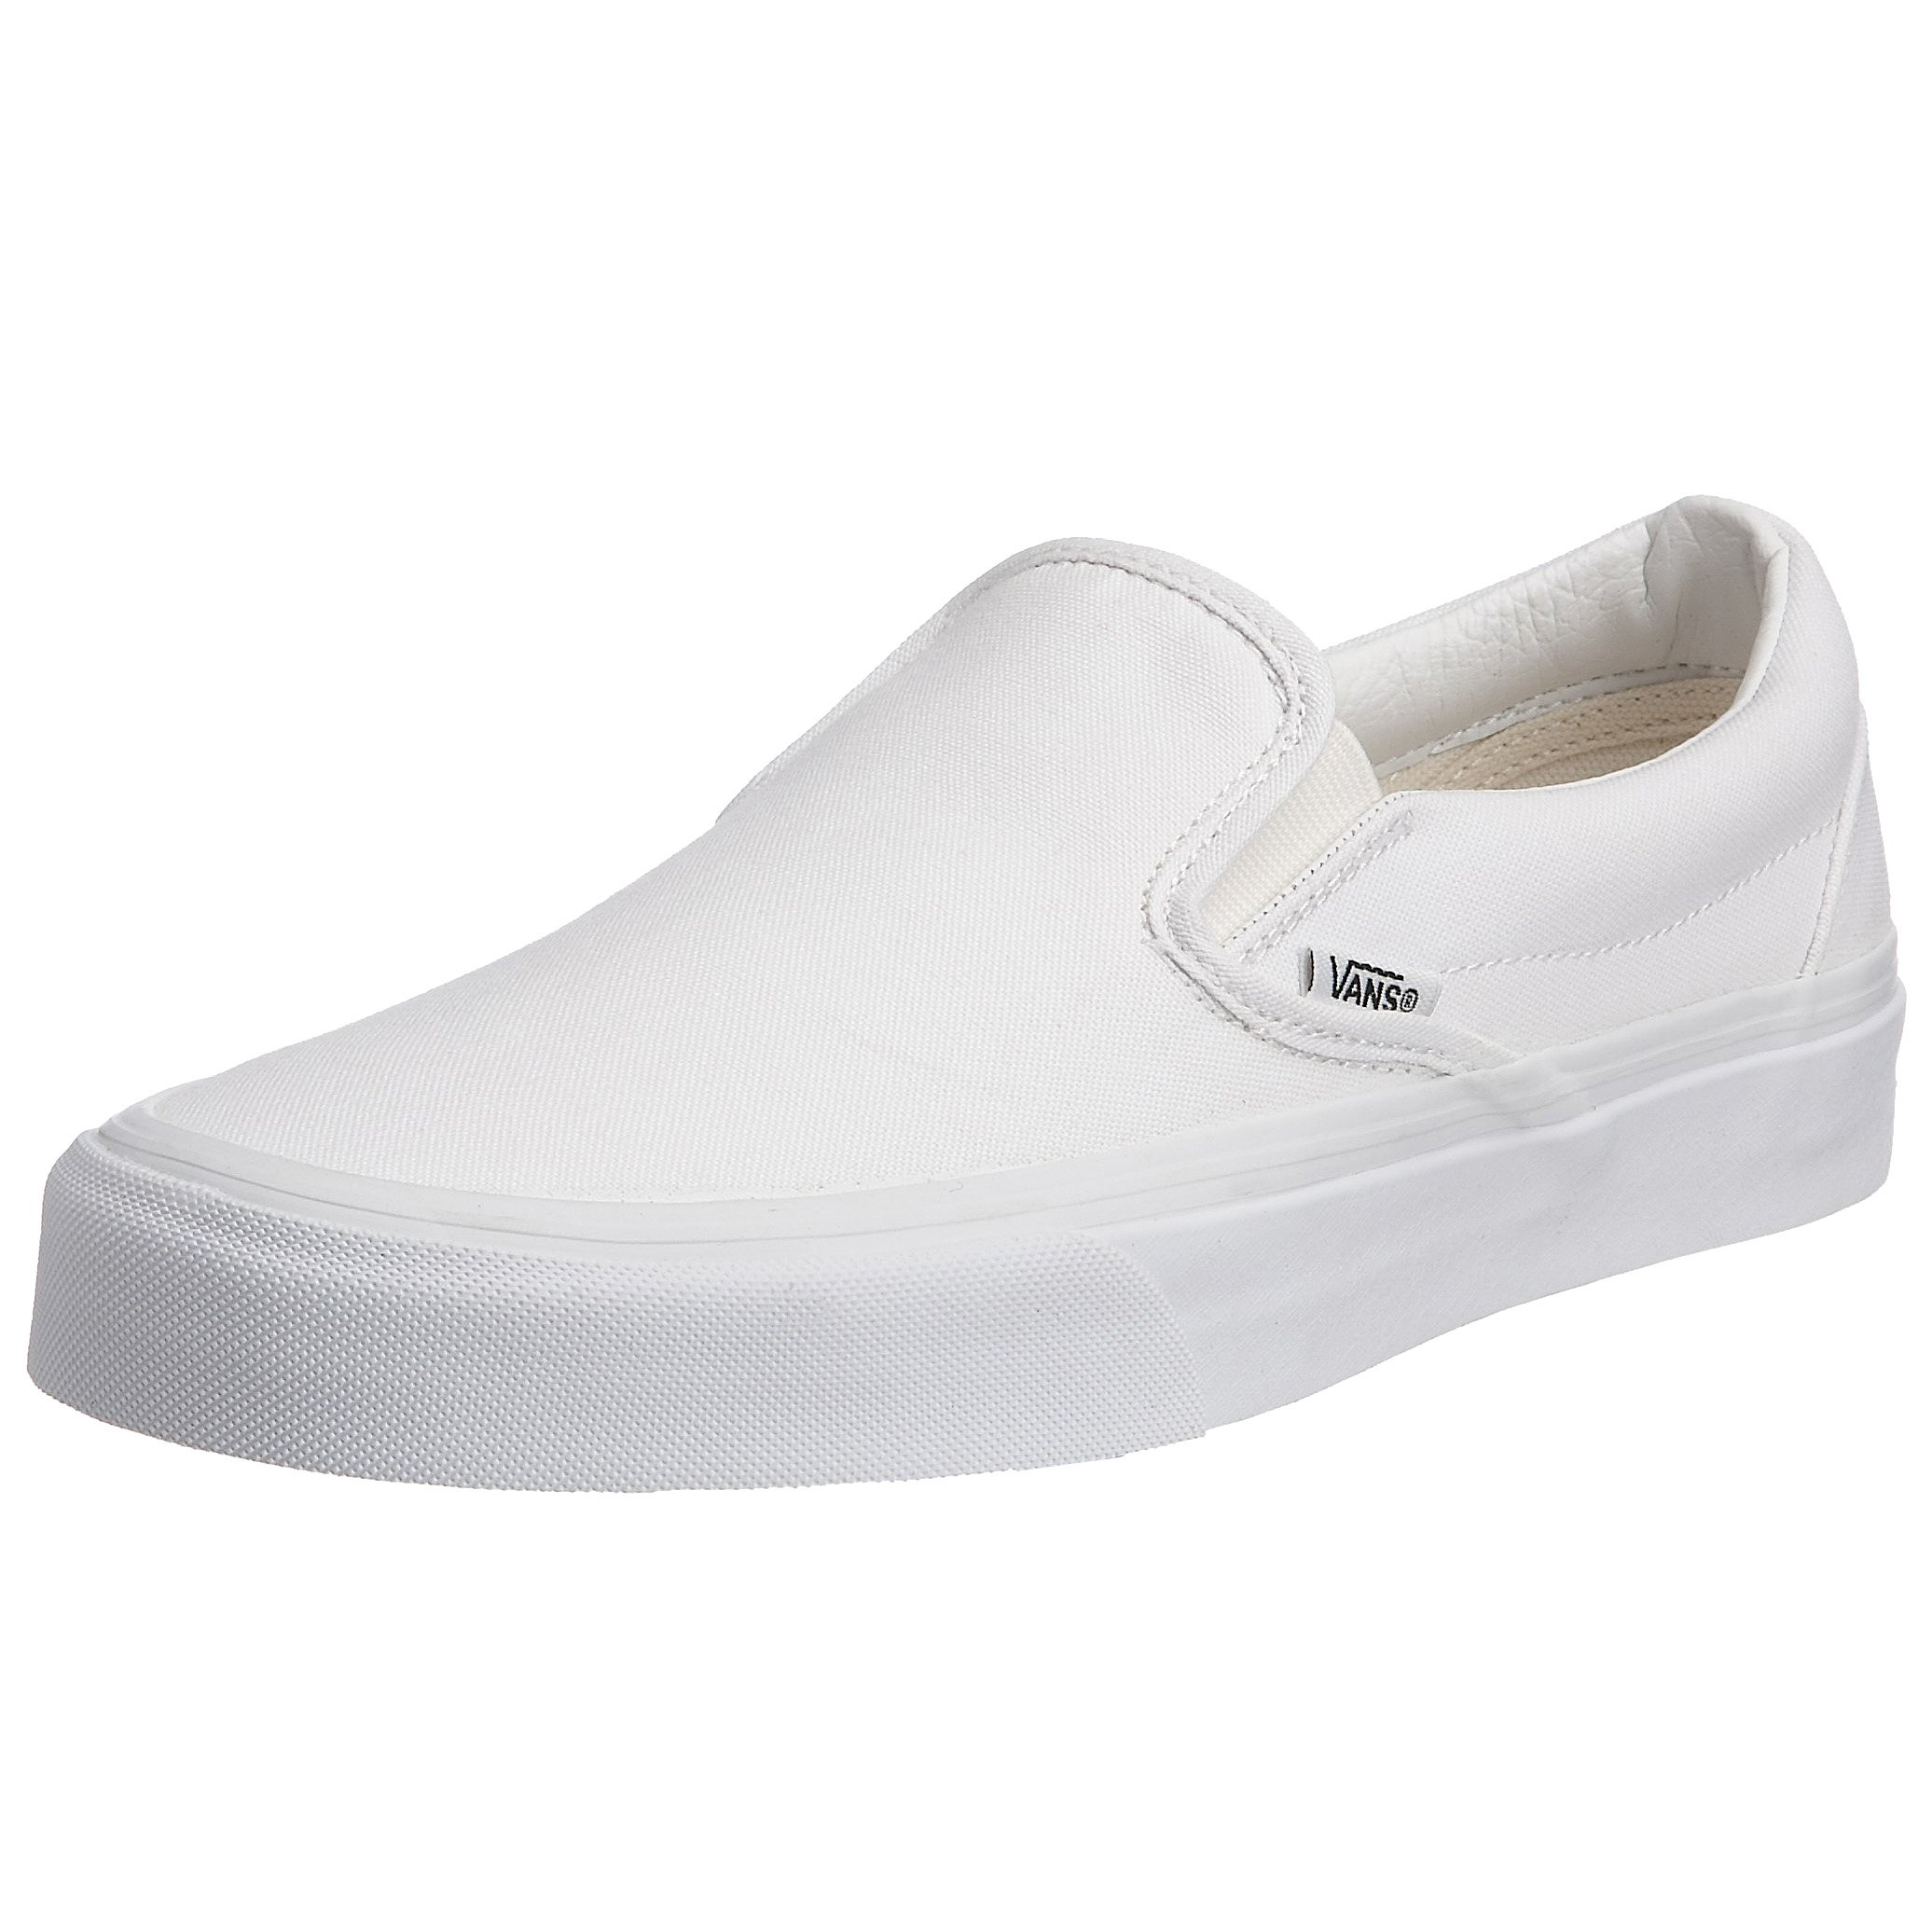 Vans Unisex Classic Slip-On(tm) Core Classics True White (Canvas) Sneaker Men's 6.5, Women's 8 Medium by Vans (Image #1)